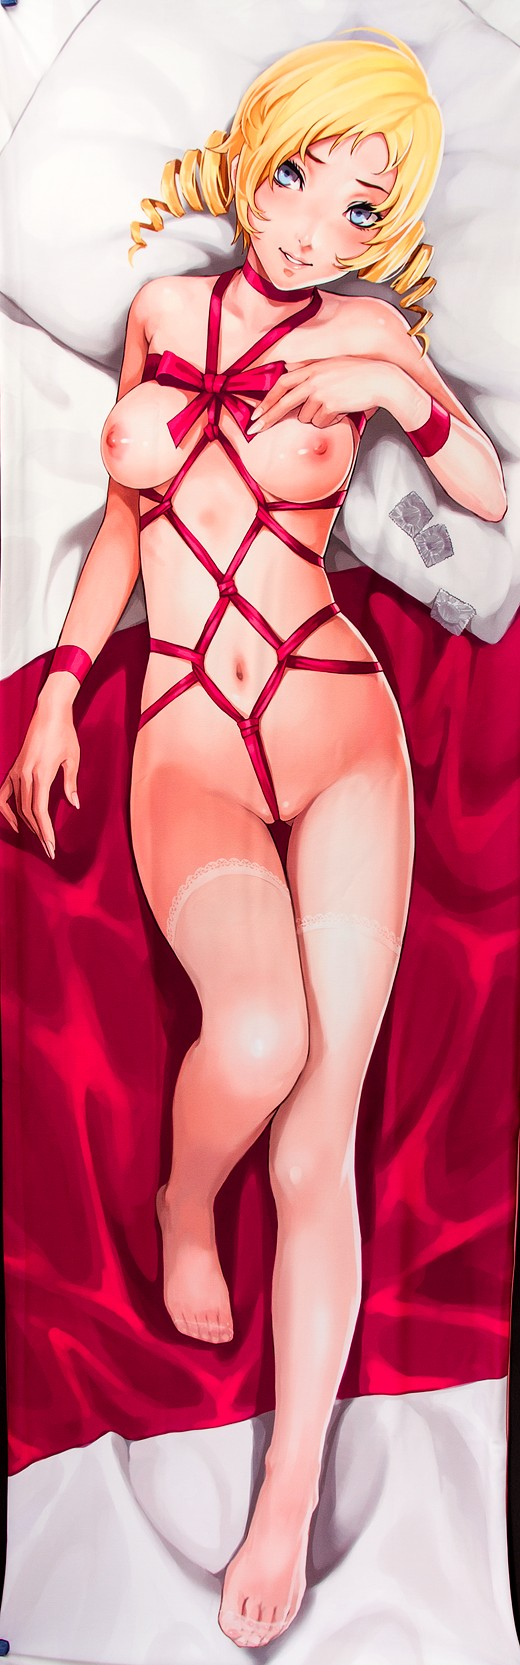 Catherine dakimakura - full view